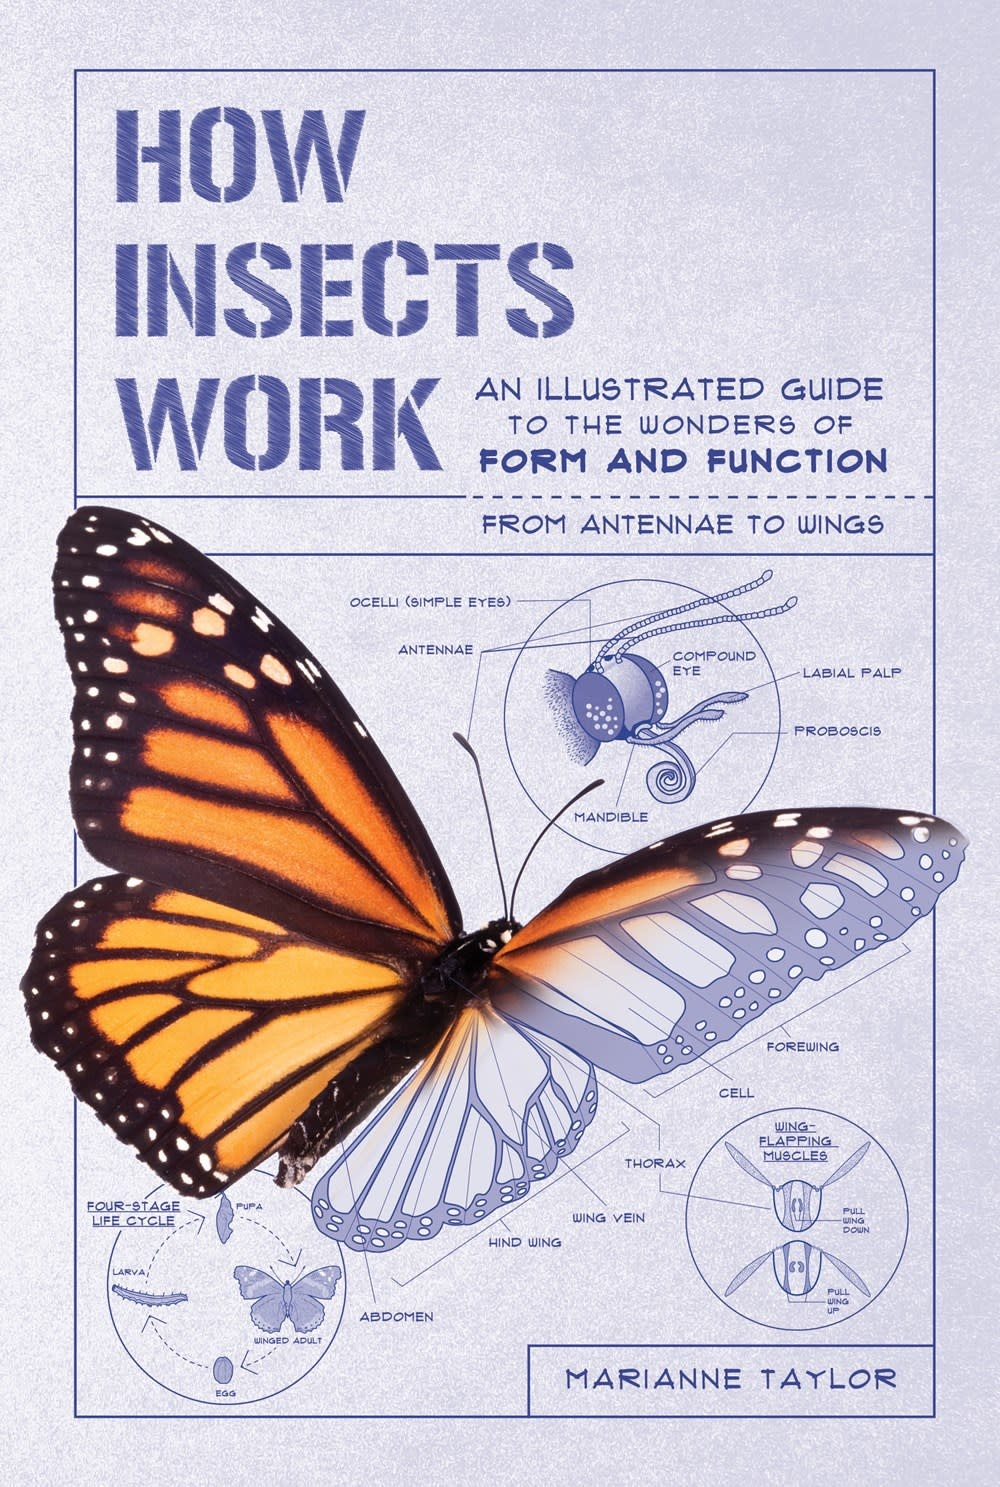 The Experiment How Insects Work: ...Form and Function from Antennae to Wings